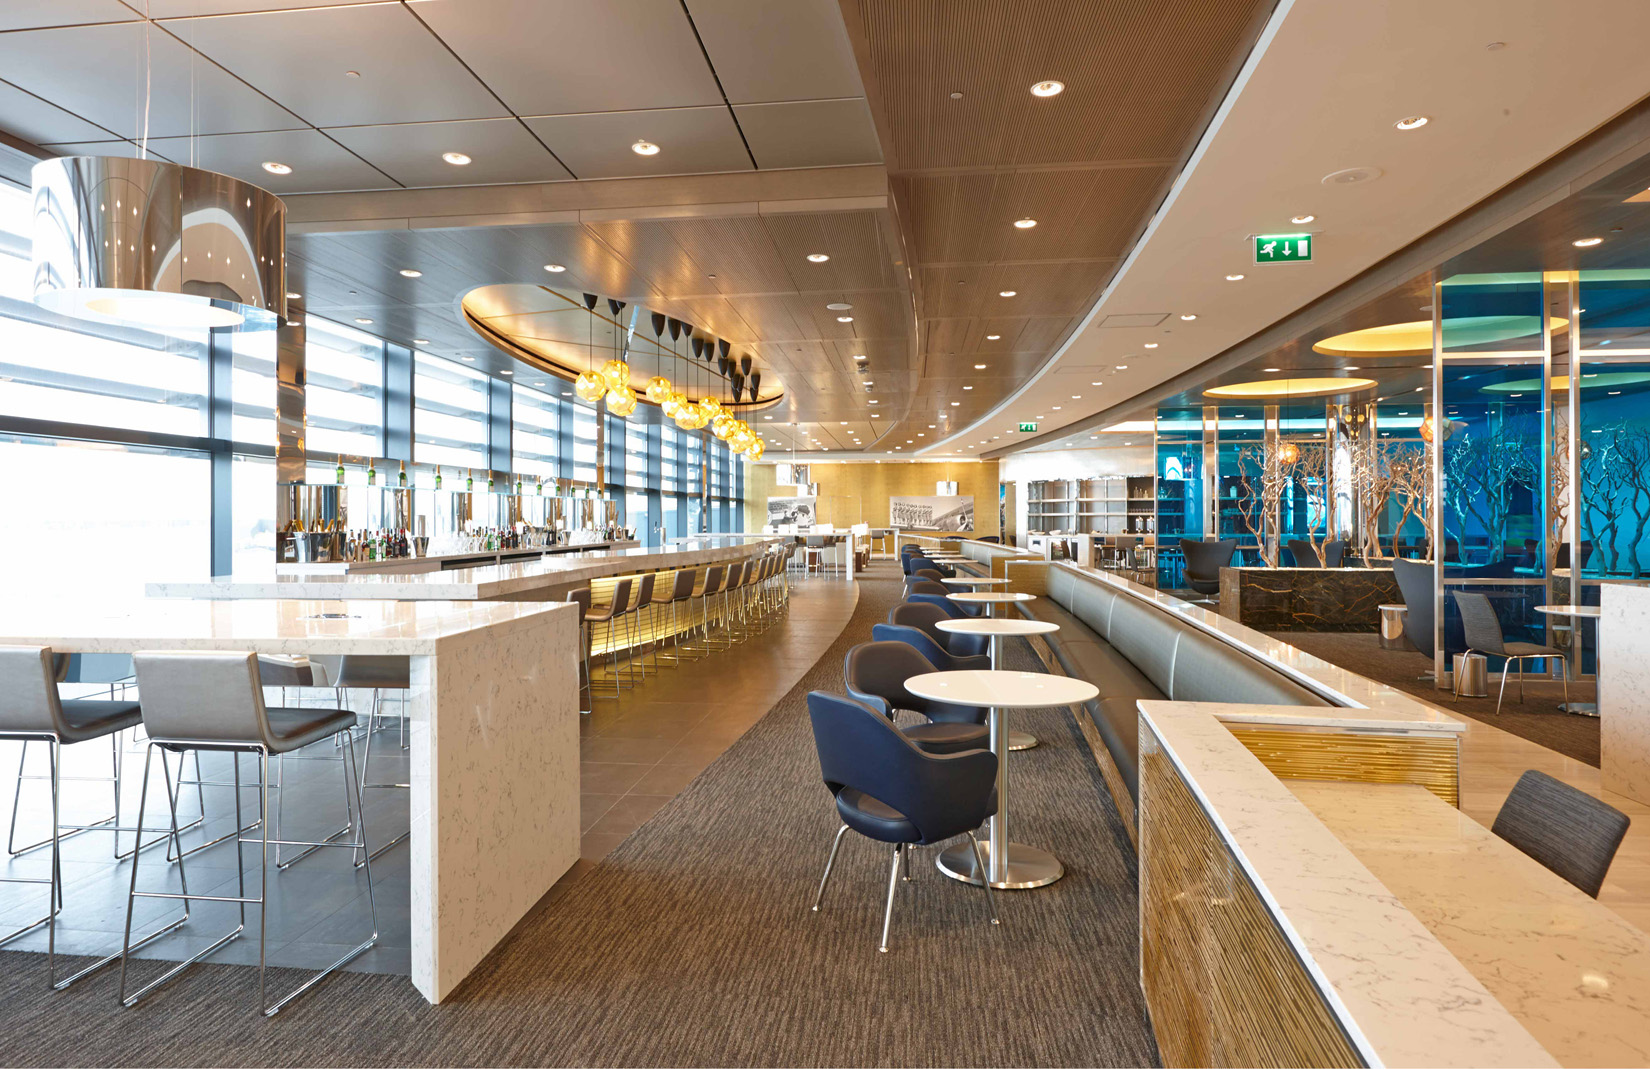 The Project Sets A New Standard For International Lounge